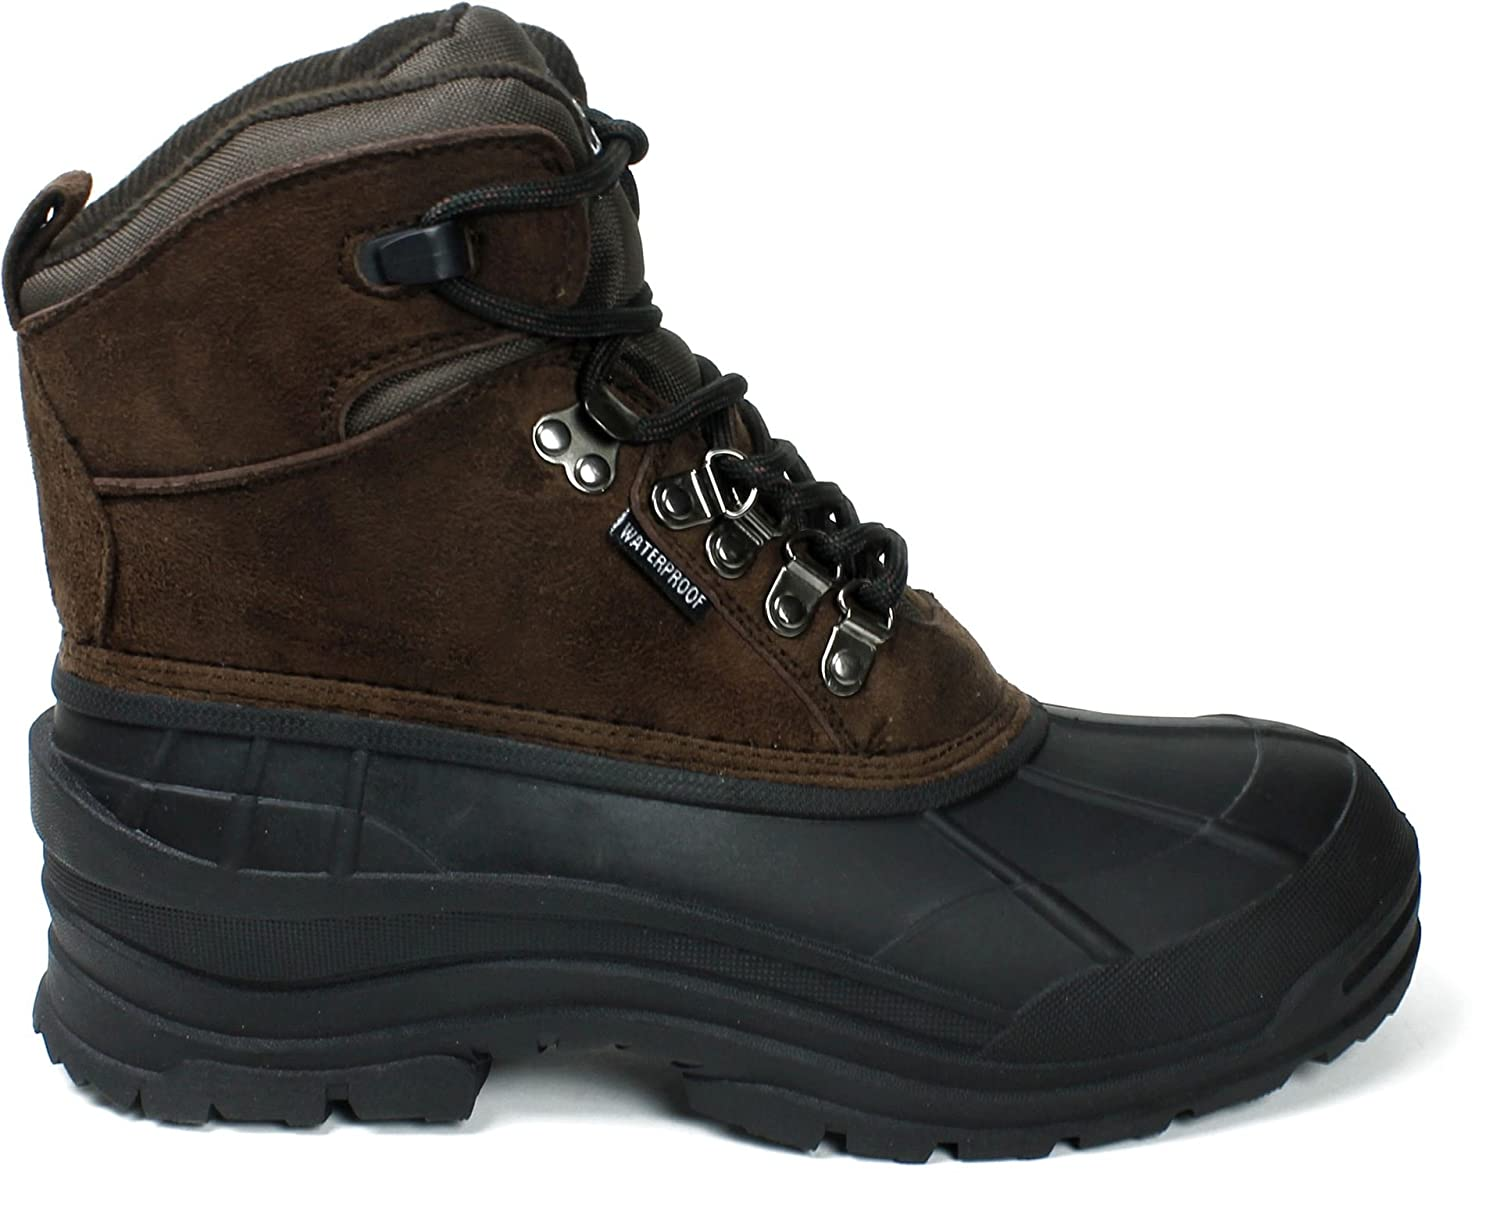 10.5, Brown103 LABO Mens Snow Boots Waterproof Insulated Lace UP 2 Style by CITISHOESNYC